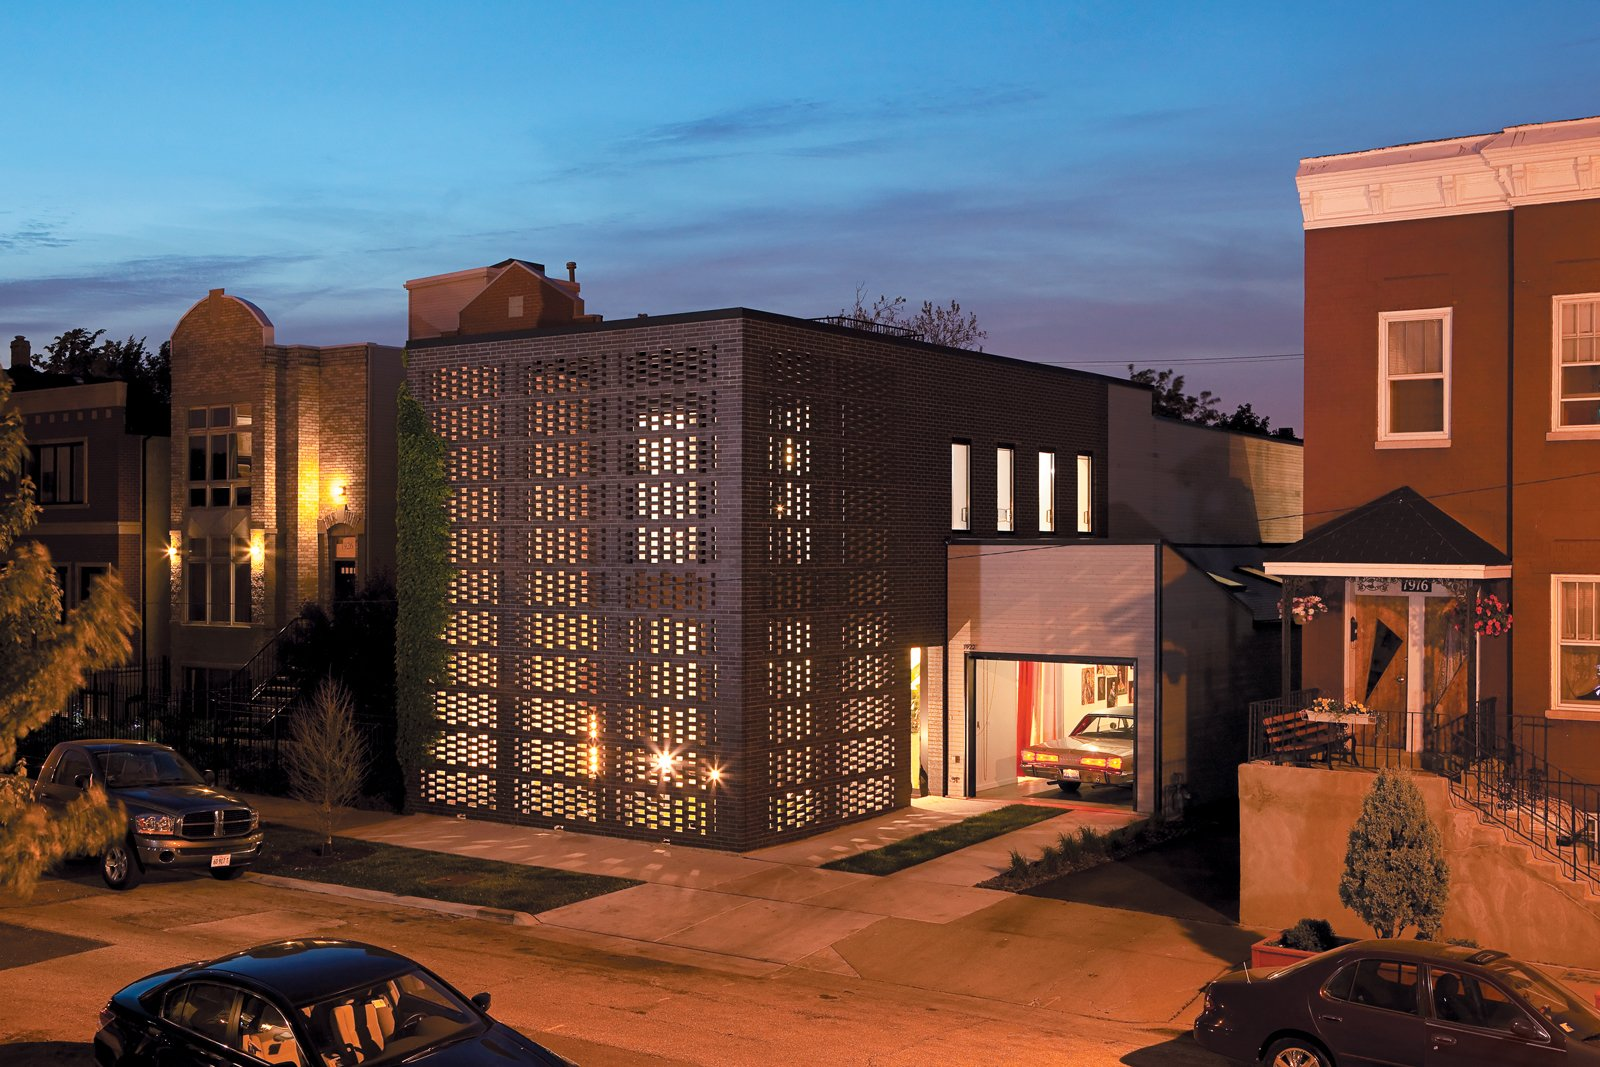 Photo 1 of 10 in The Brick Weave House in Chicago